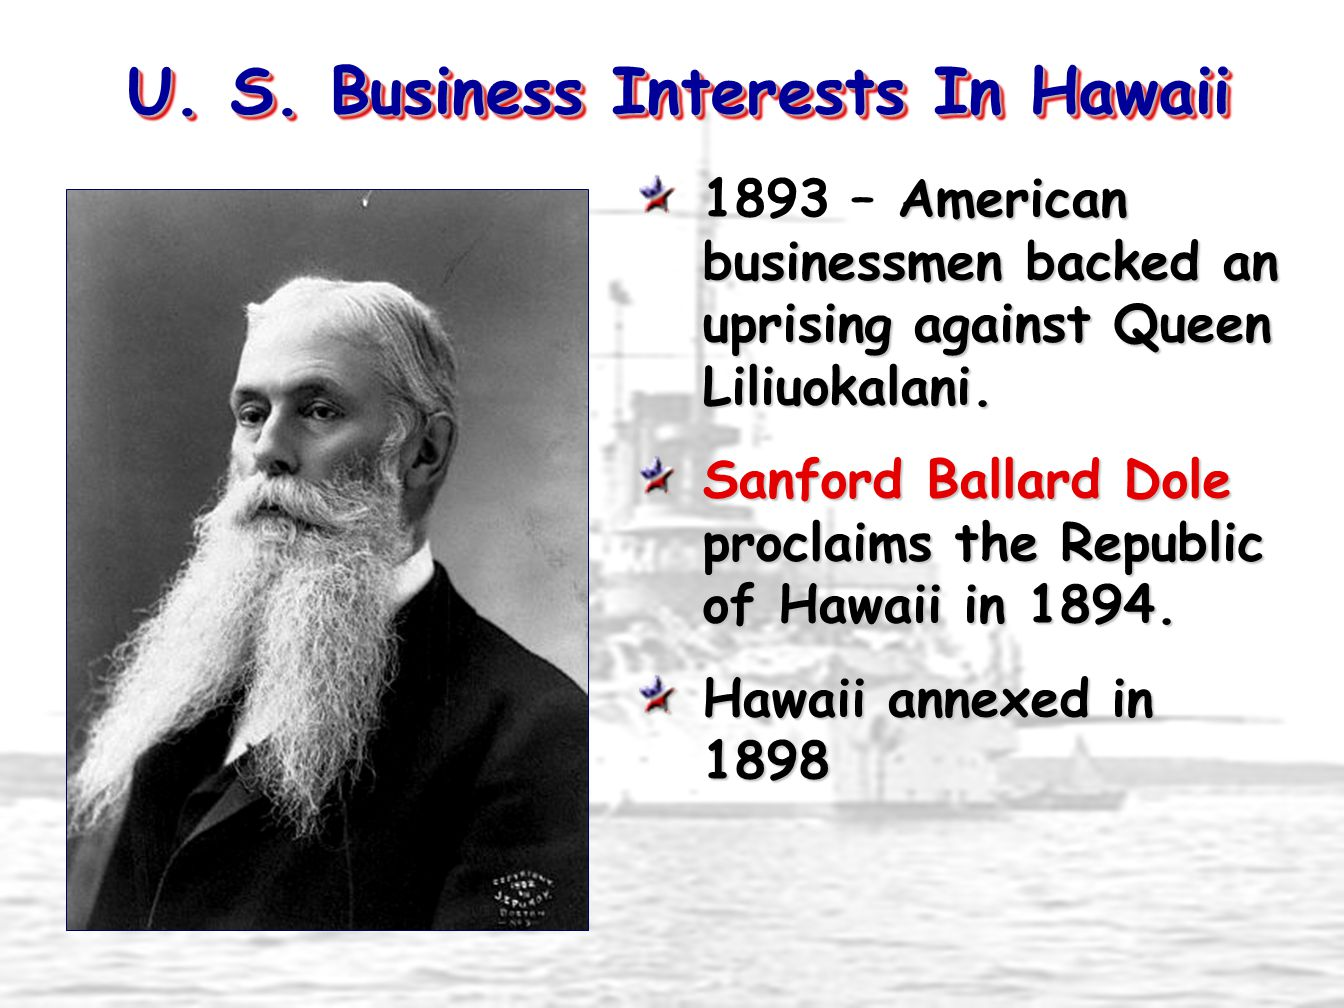 U. S. Business Interests In Hawaii